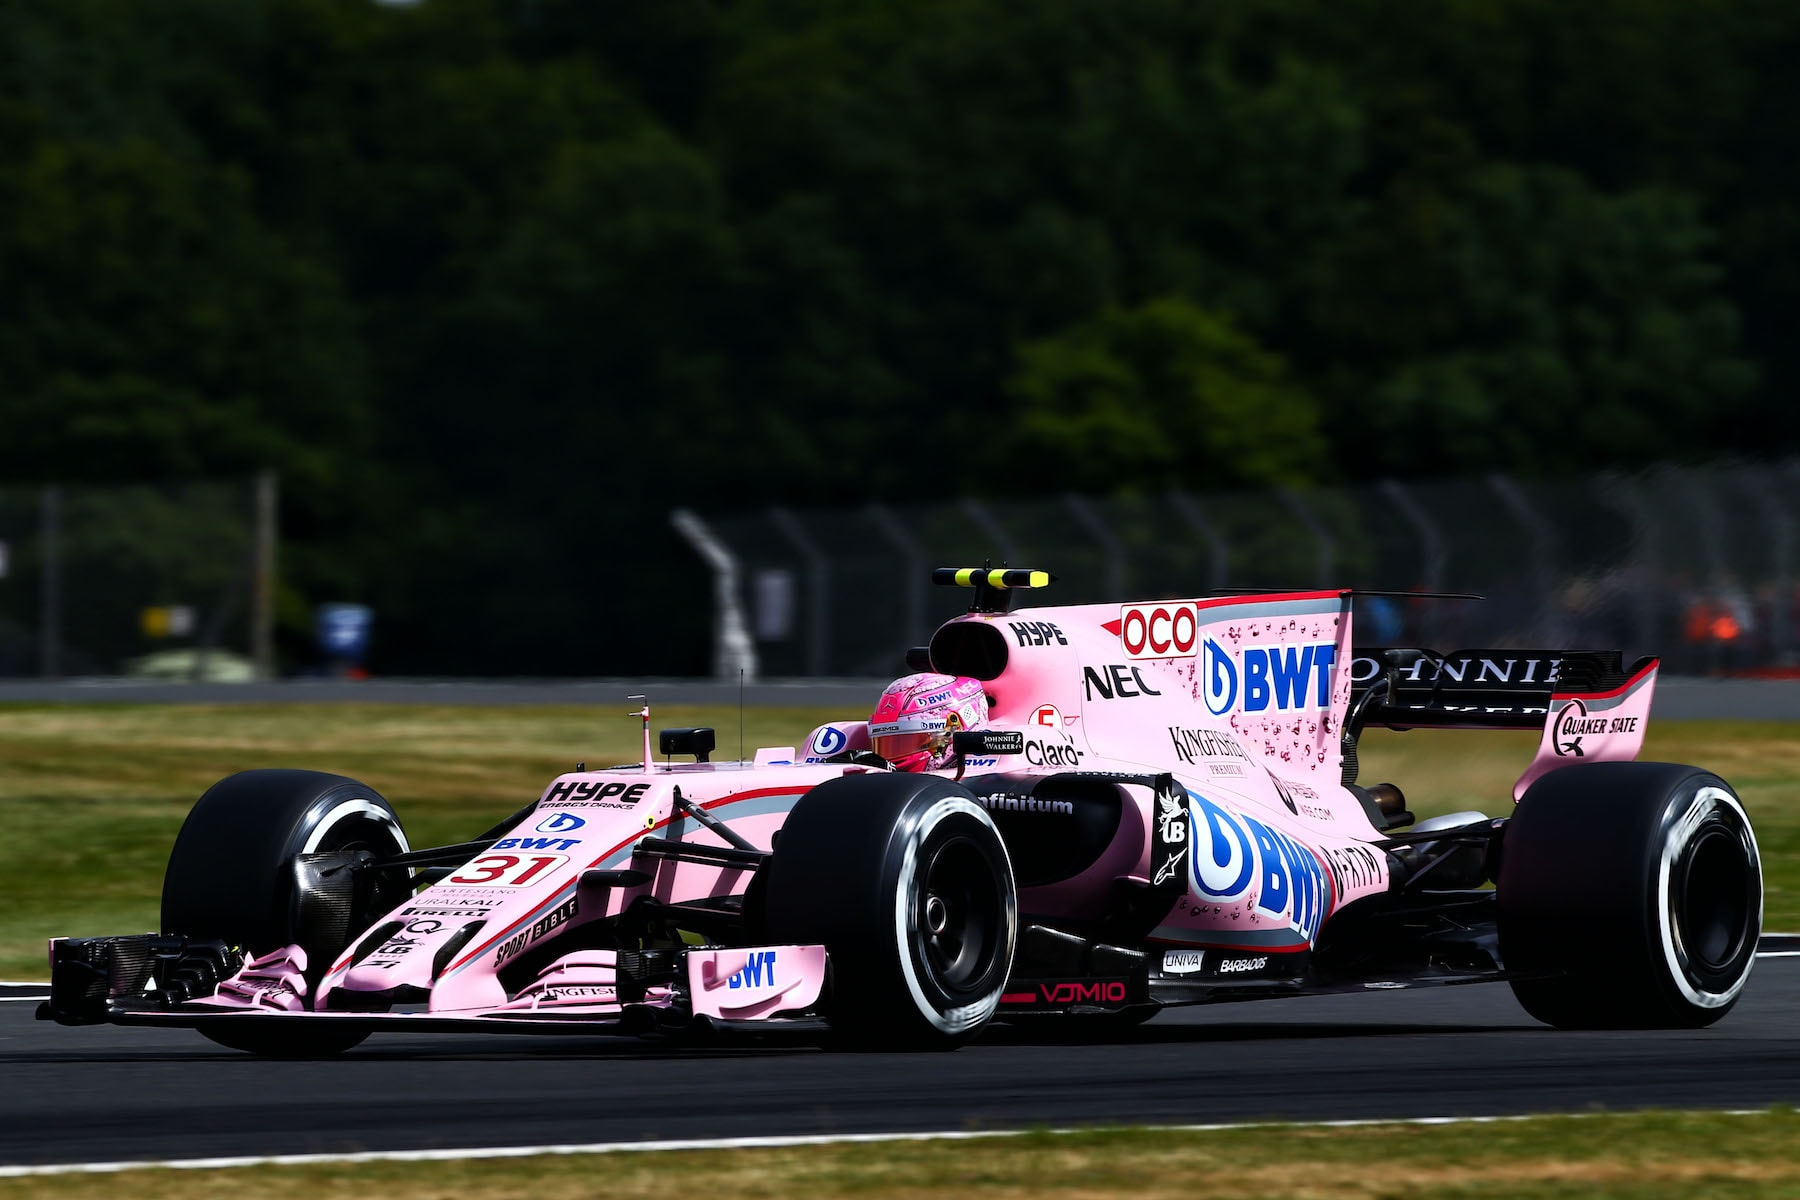 2017 Esteban Ocon | Force India VJM10 | 2017 British GP FP2 1 copy.jpg